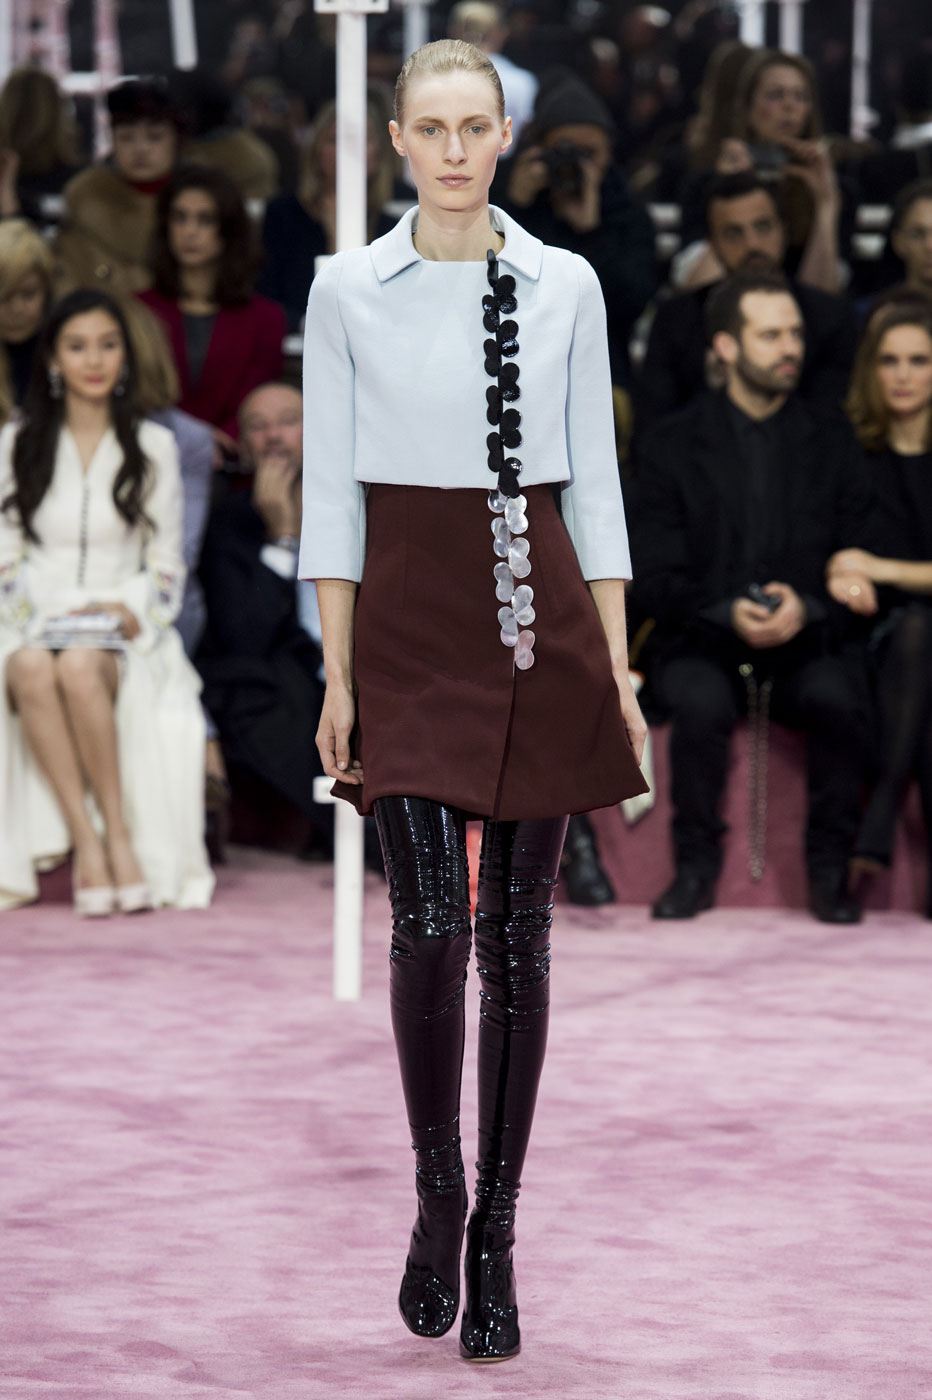 Christian-Dior-fashion-runway-show-haute-couture-paris-spring-summer-2015-the-impression-015